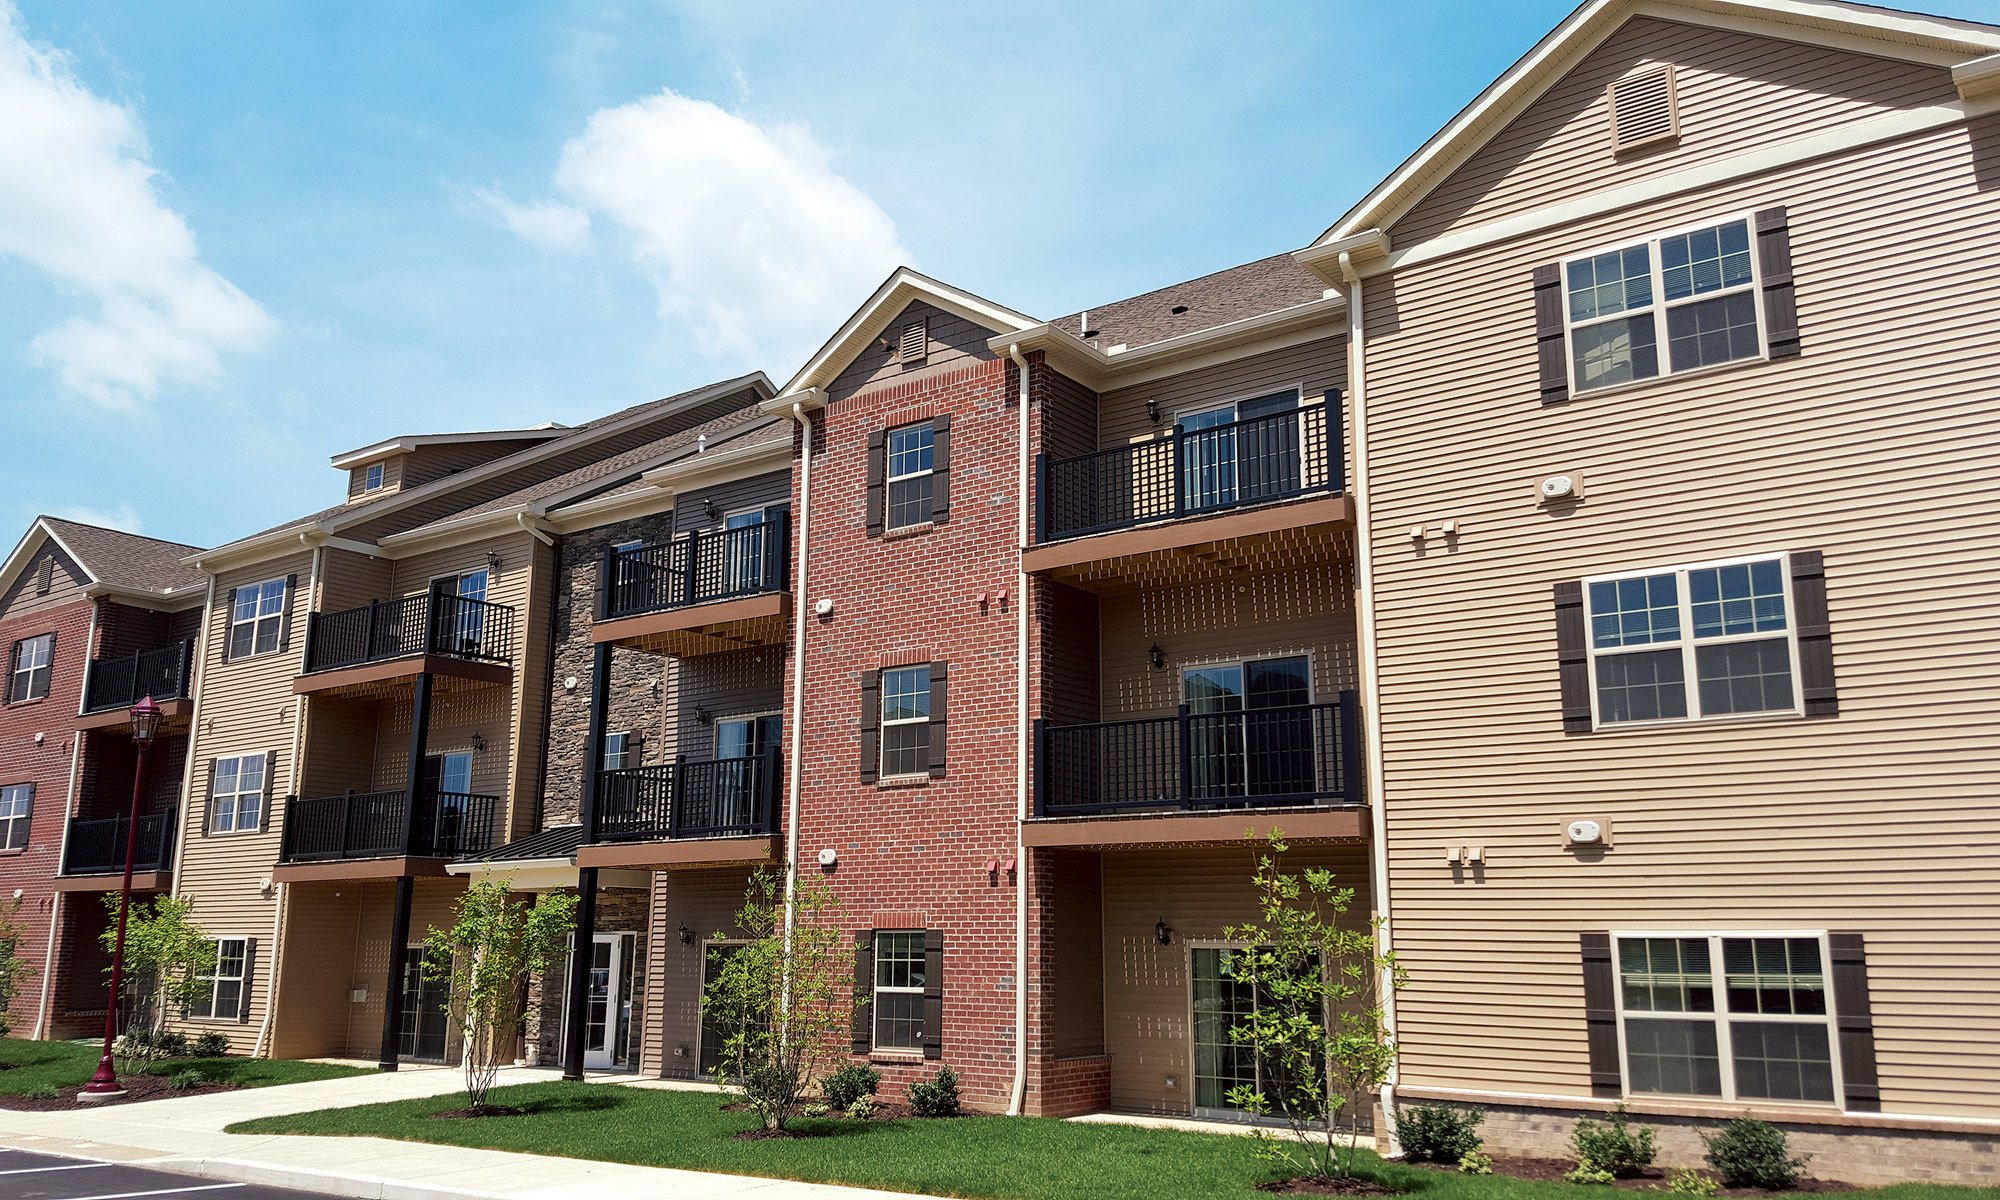 Luxury apartment living in Cranberry Township, at Eden Square Apartments